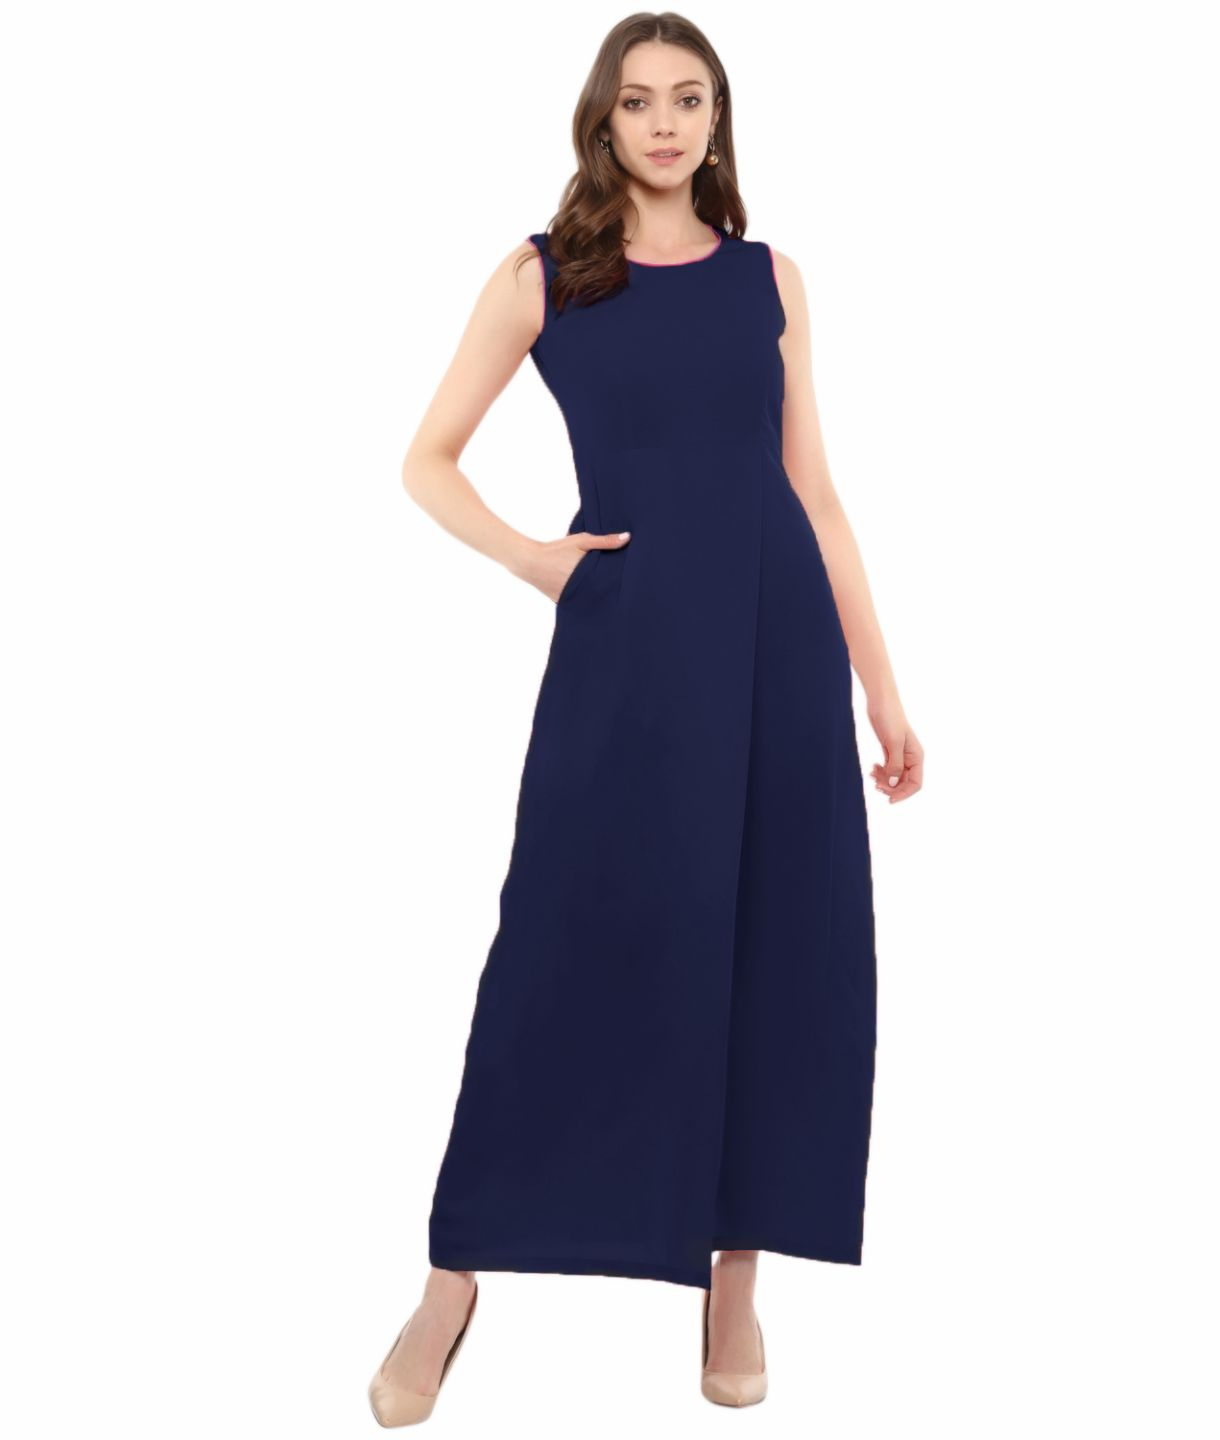 Uptownie Plus Navy Blue Solid Sleeveless Crepe Maxi Dress/Gown